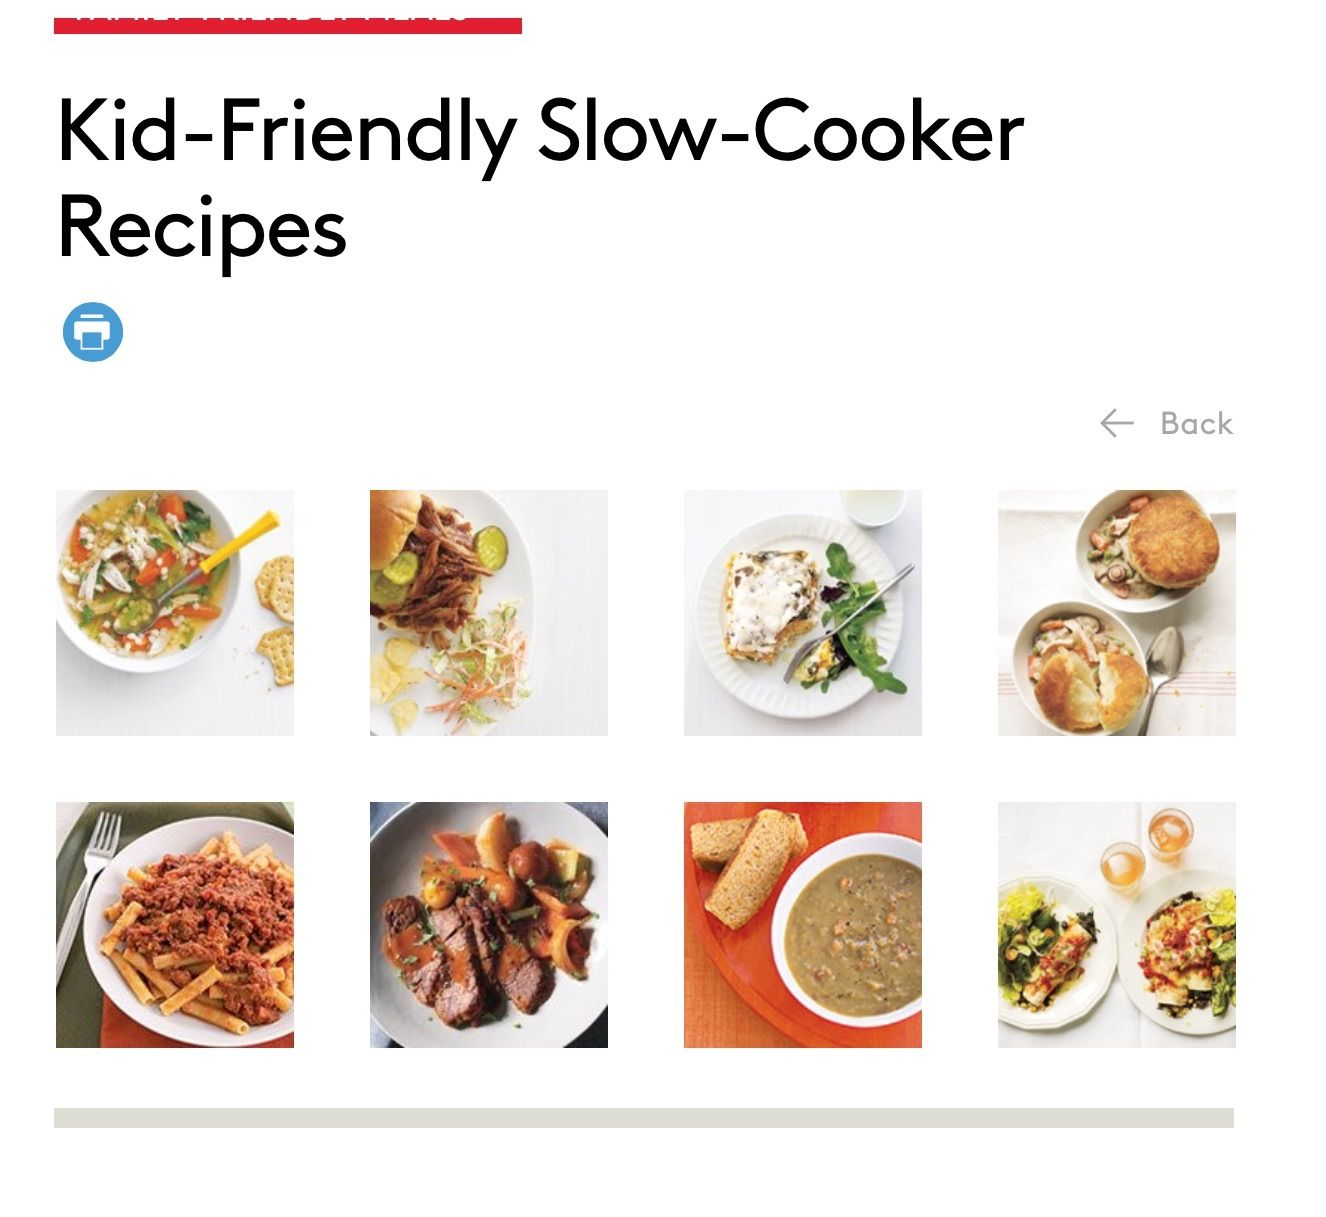 Kid-Friendly Slow-Cooker Recipes